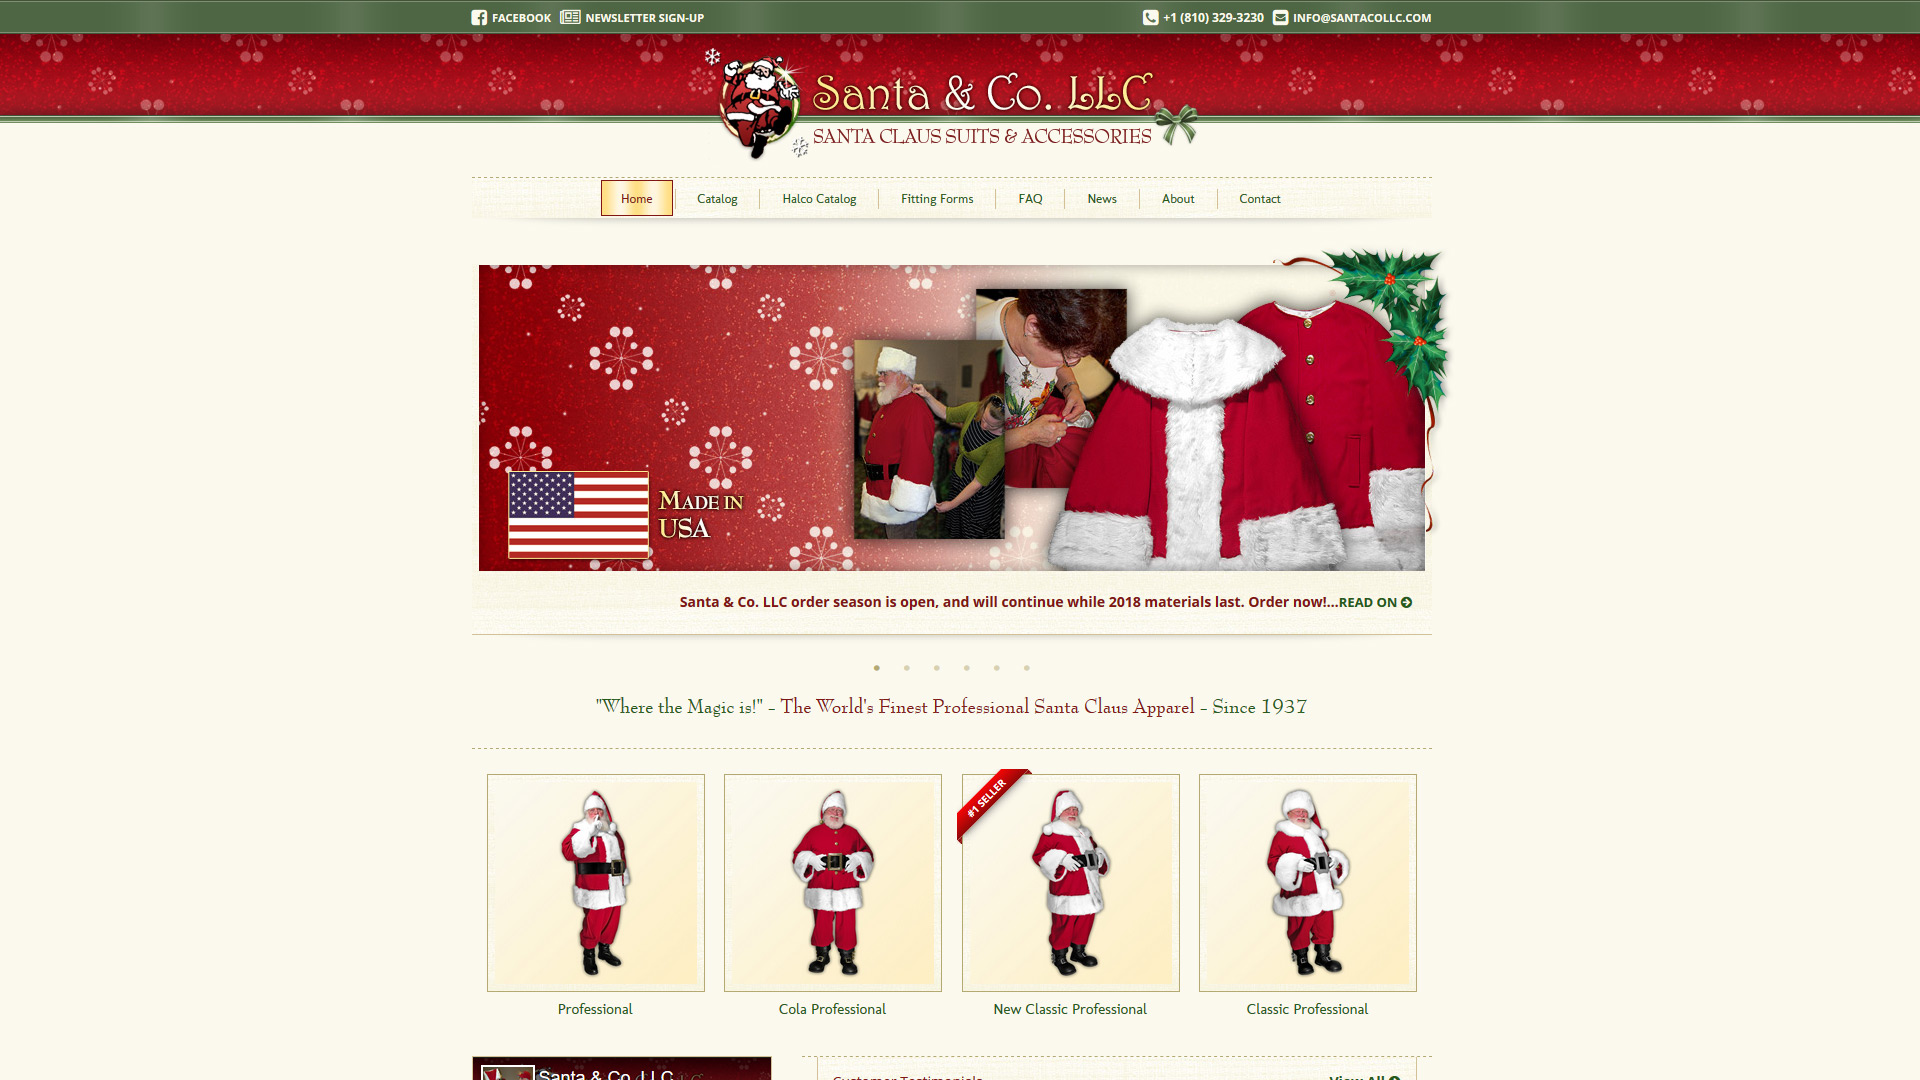 Santa & Co. LLC | santacollc.com